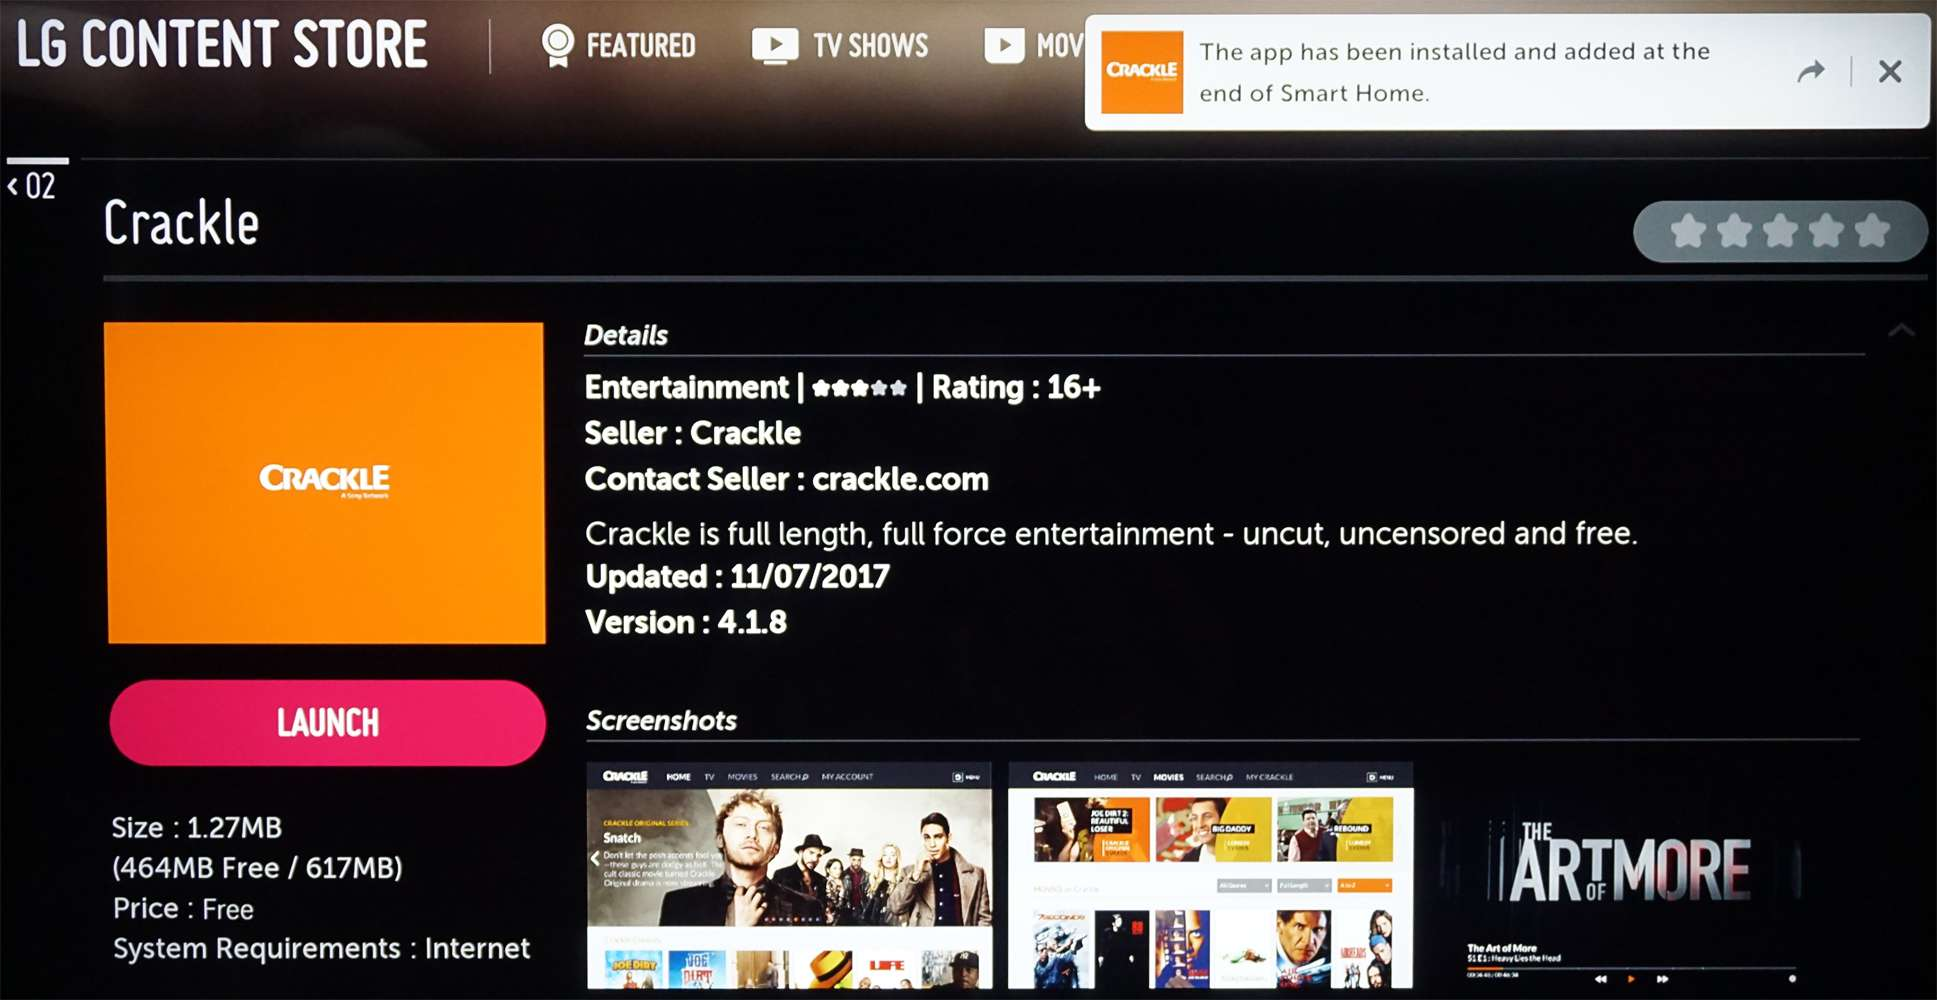 LG Content Store Crackle App Installed